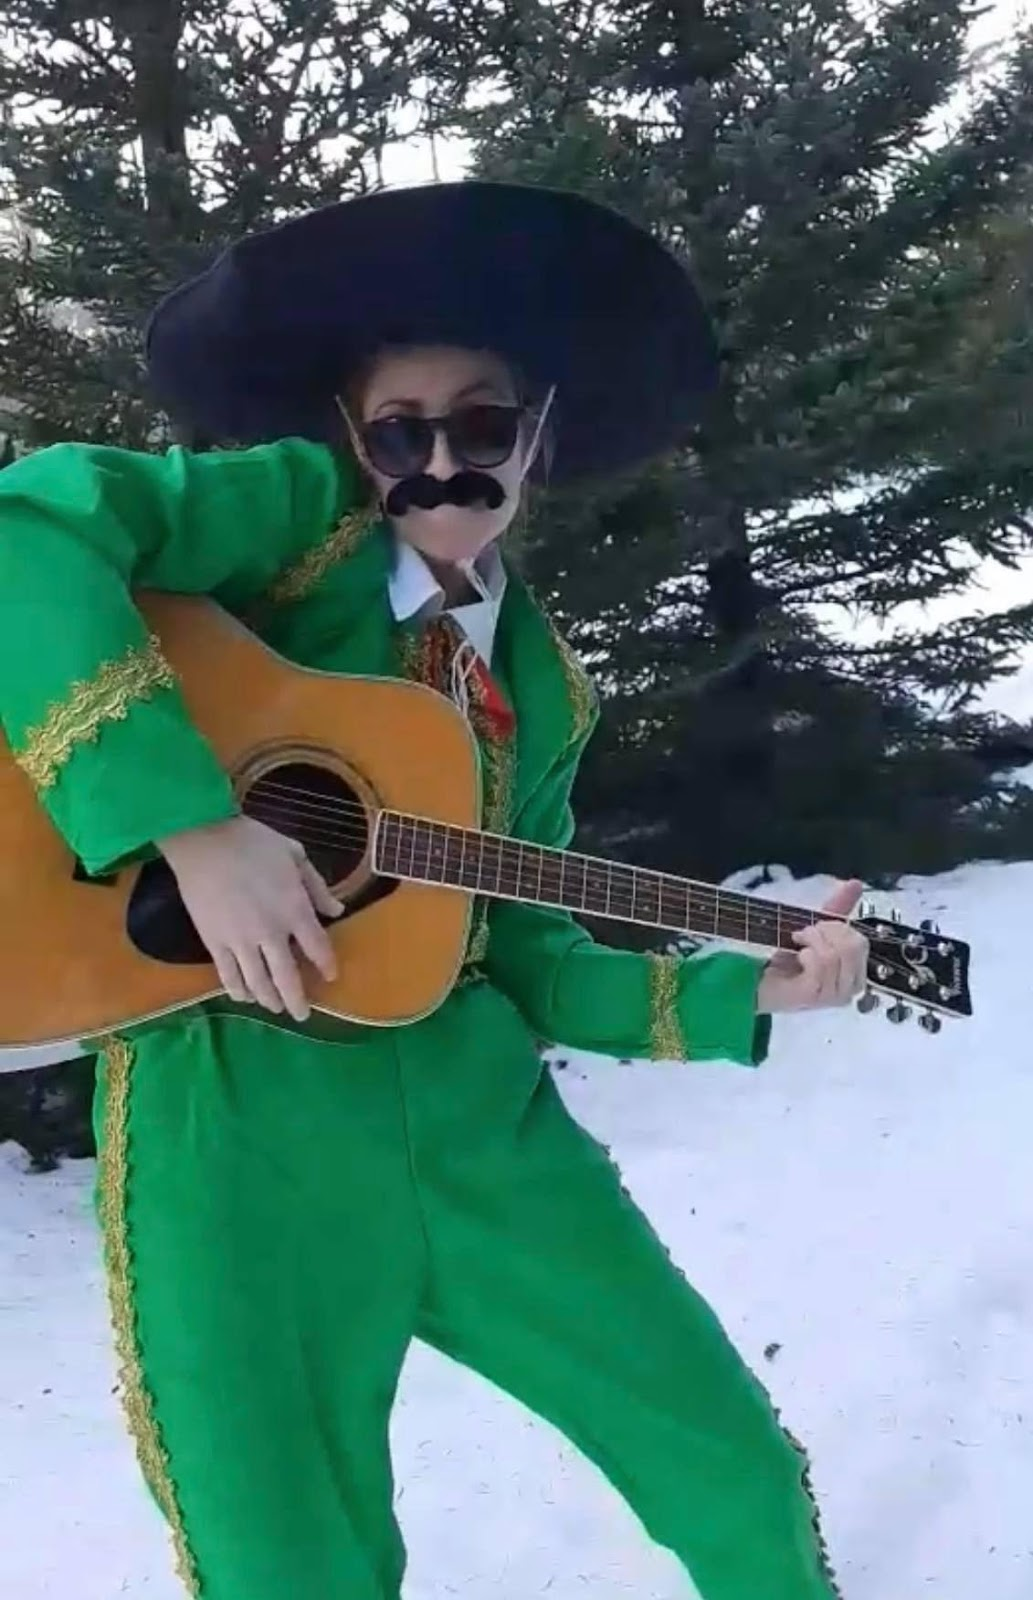 A person in a costume holding a guitar in the snow  Description automatically generated with medium confidence